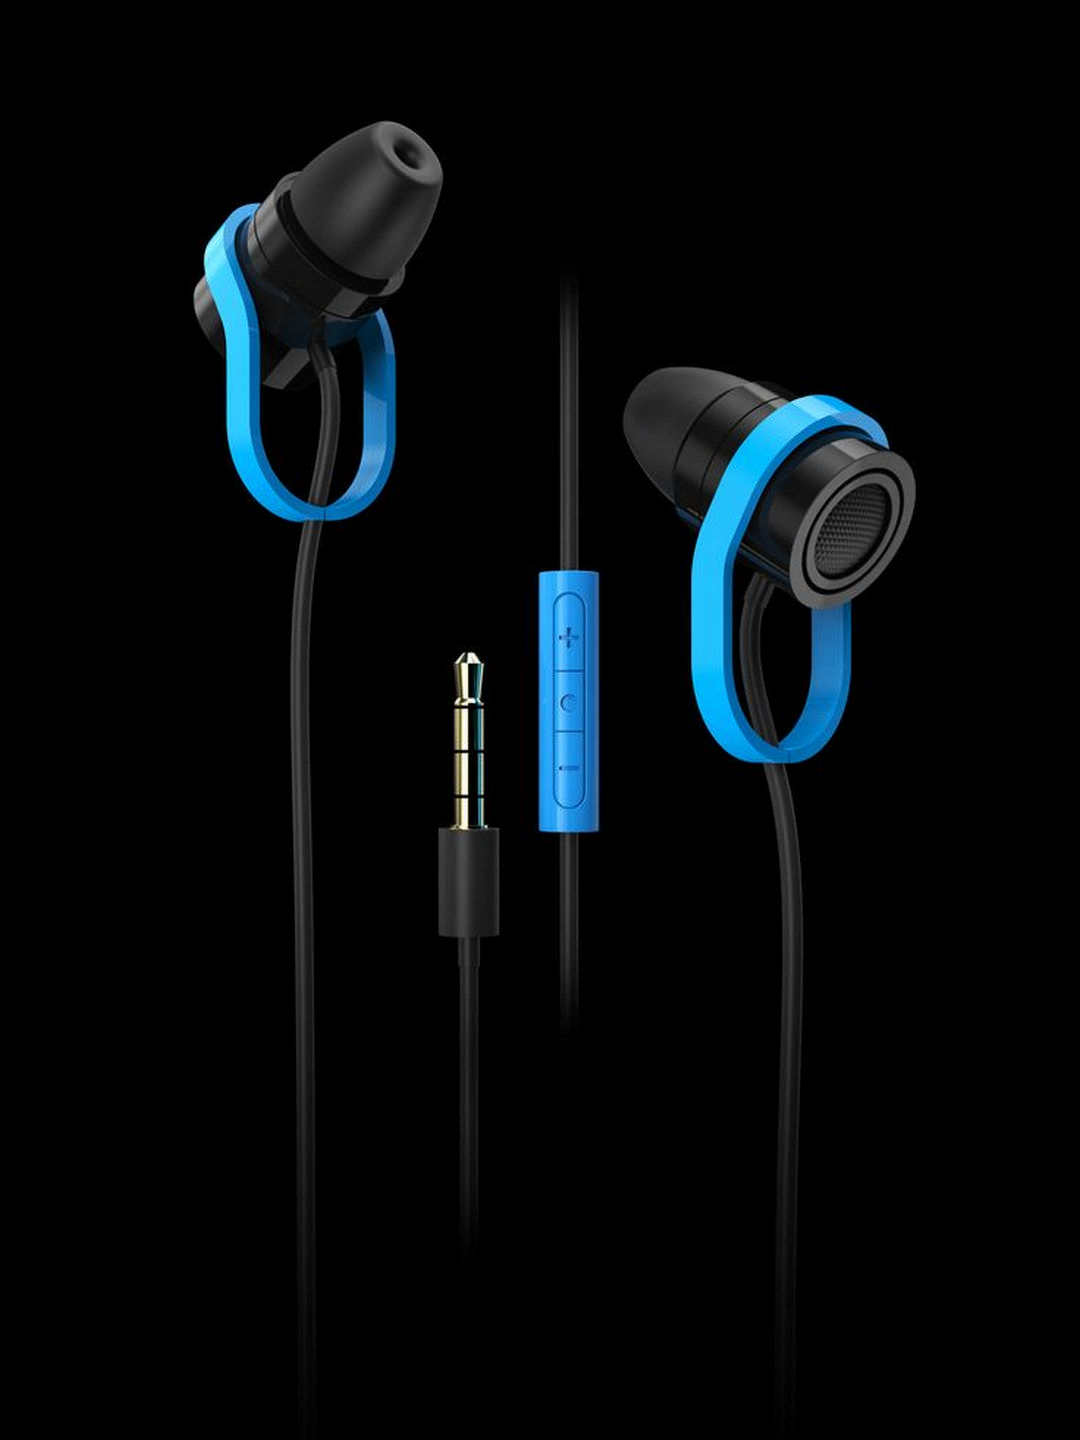 Linpa World M1 On Ear Bluetooth Headset Review Sharp And Clear The Cost Effective Headphone Headphones Design Earphone Phone Accessories Headphones